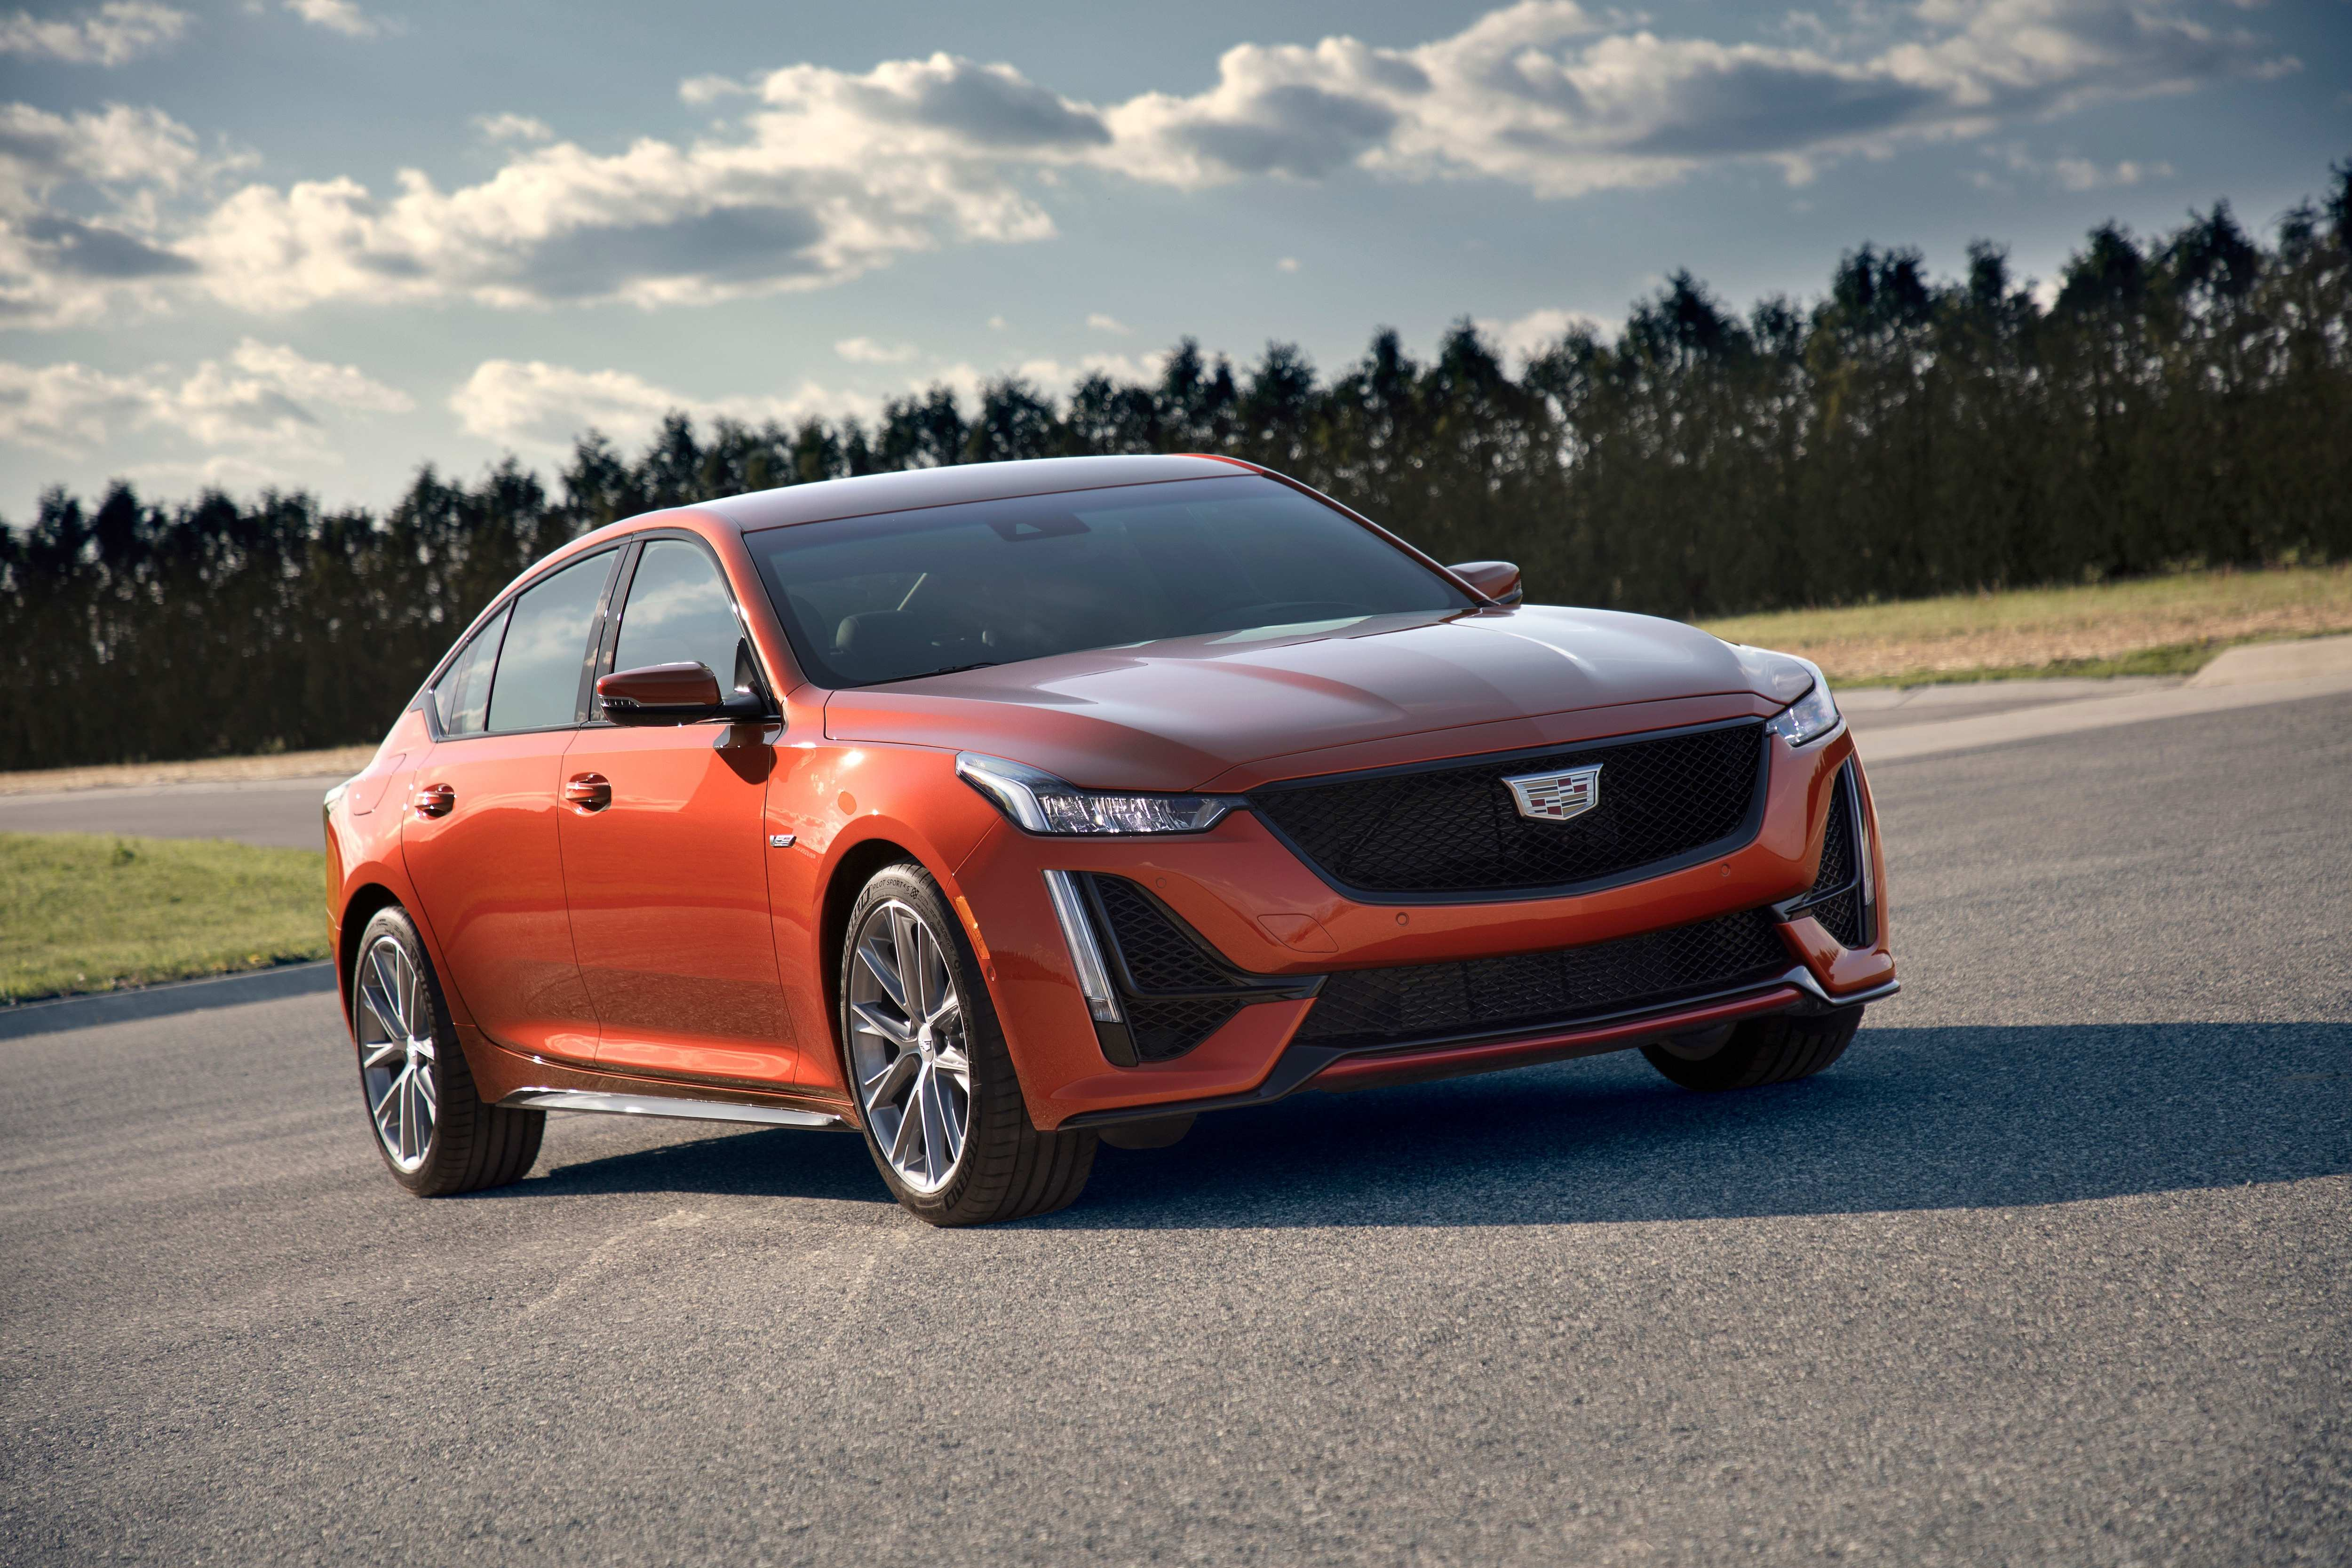 36 Best Review Cadillac For 2020 Images for Cadillac For 2020